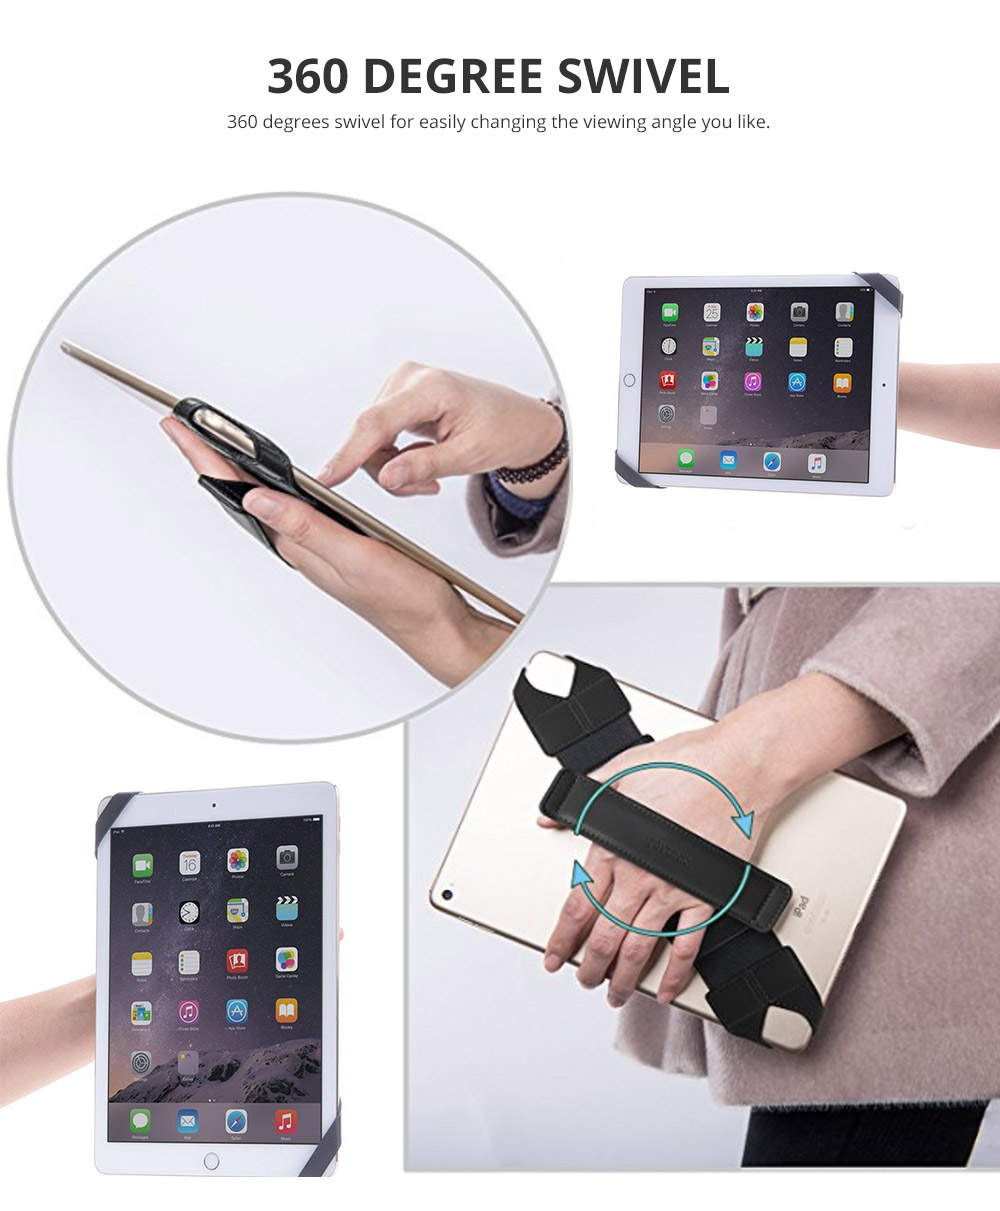 360 Degree Swivel Hand Strap Holder for Phones